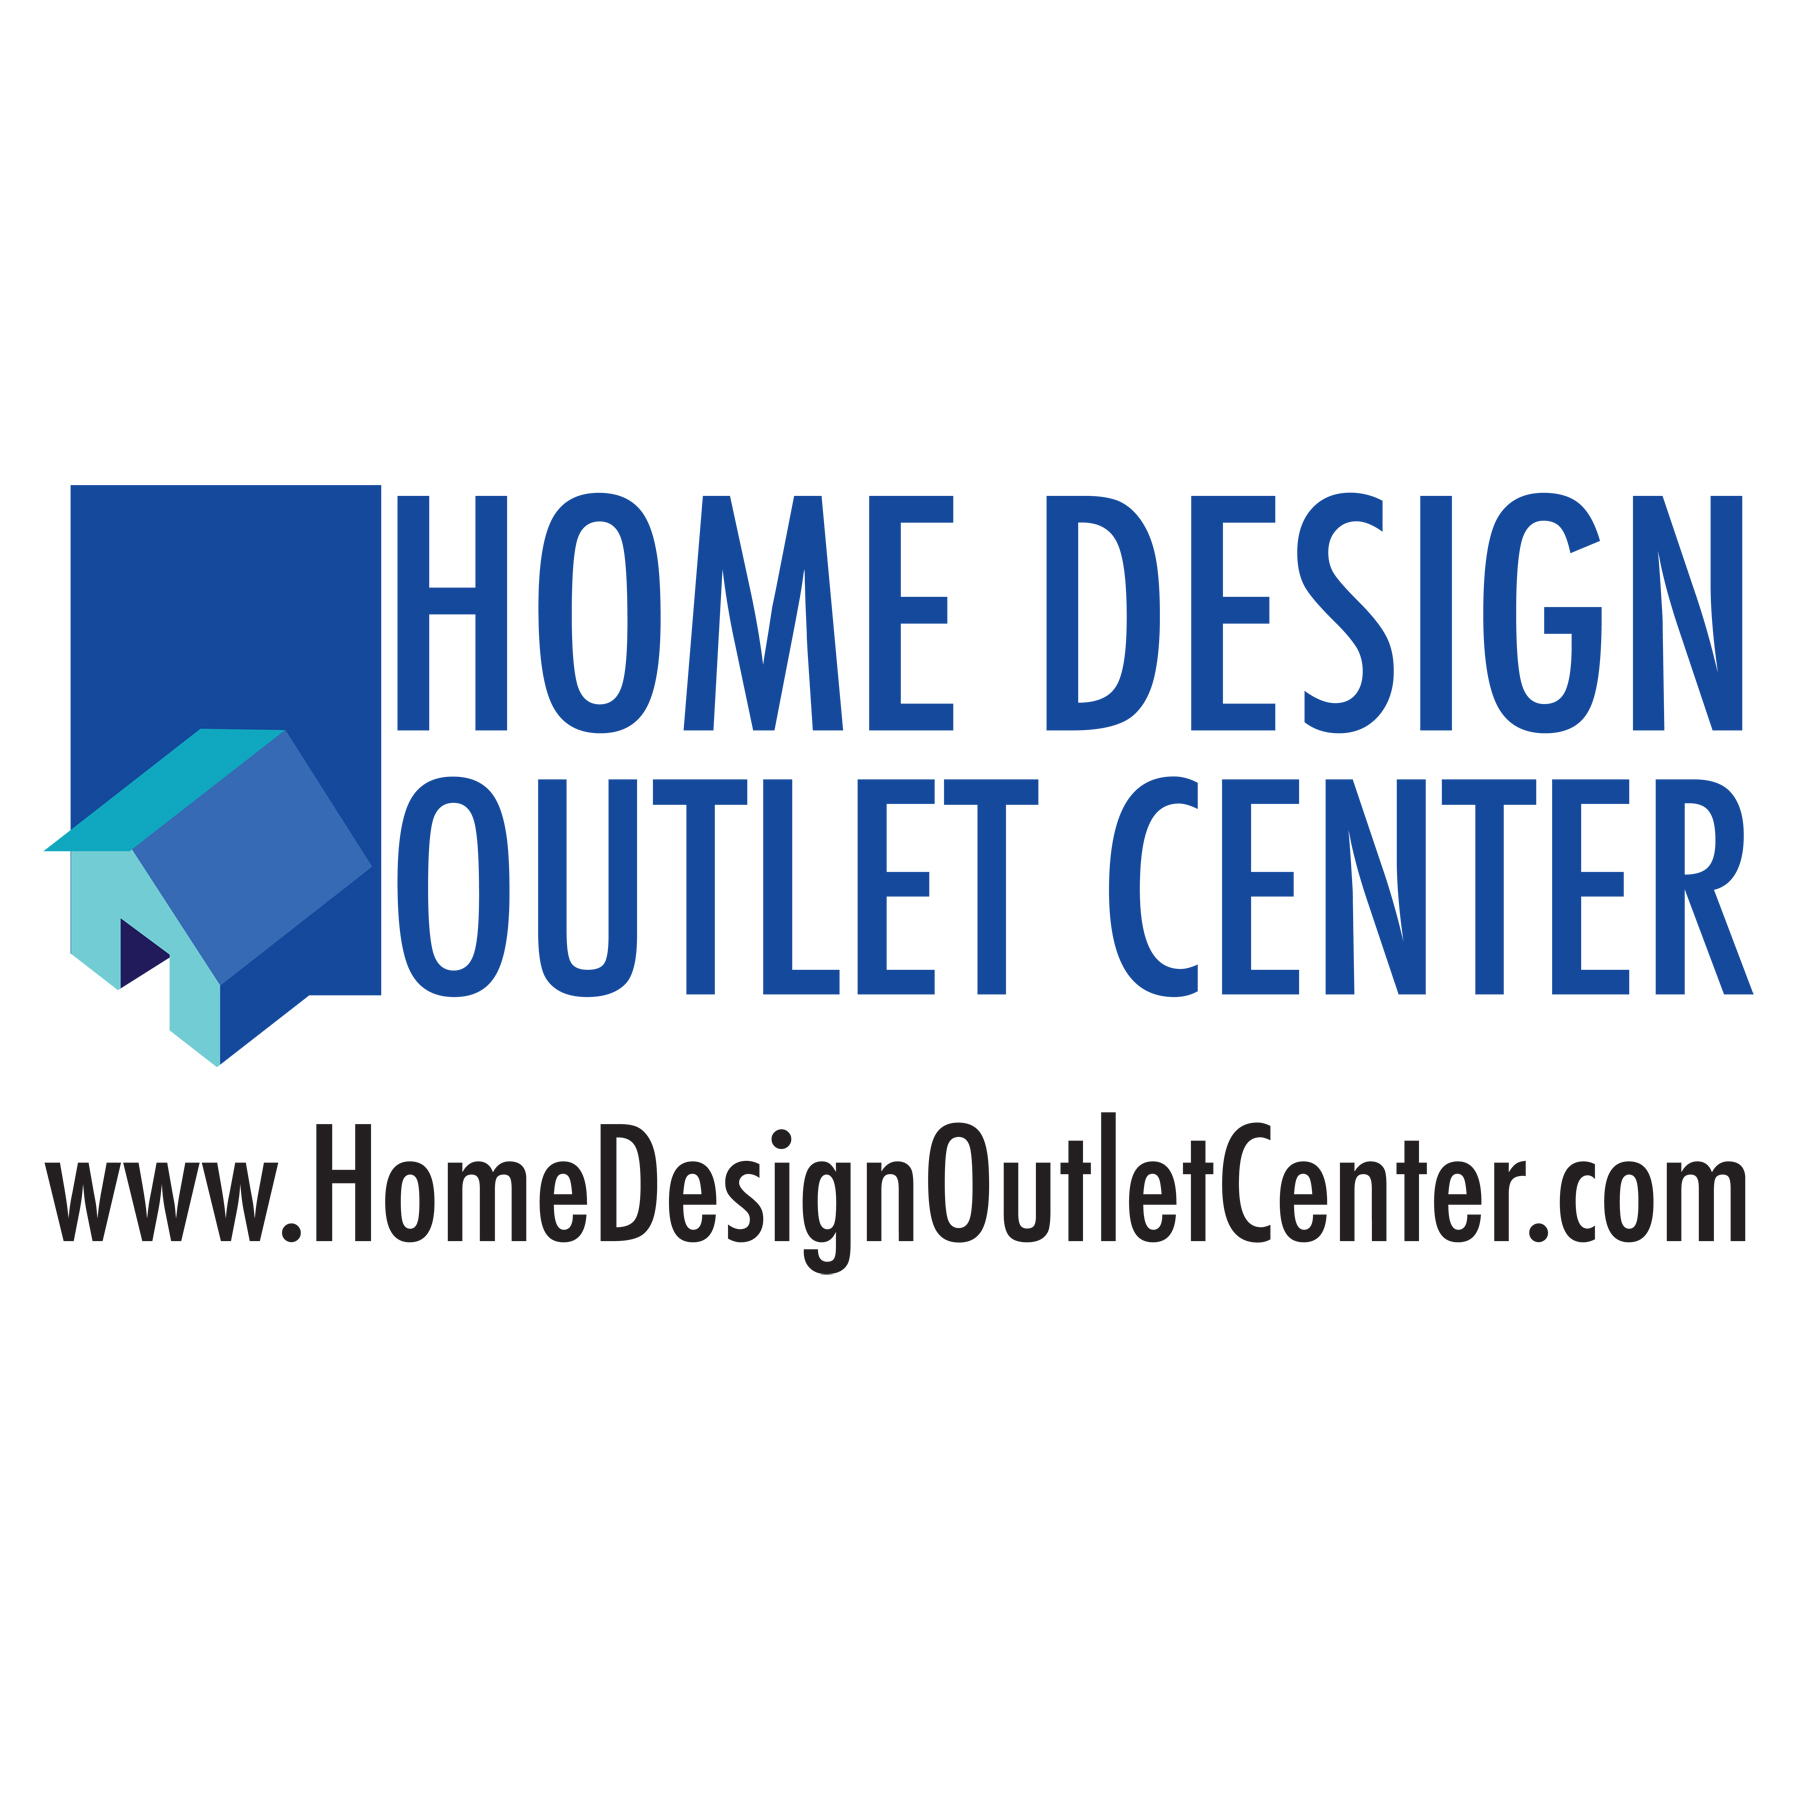 home design outlet center 400 county ave secaucus nj home design outlet center los angeles bathroom vanity